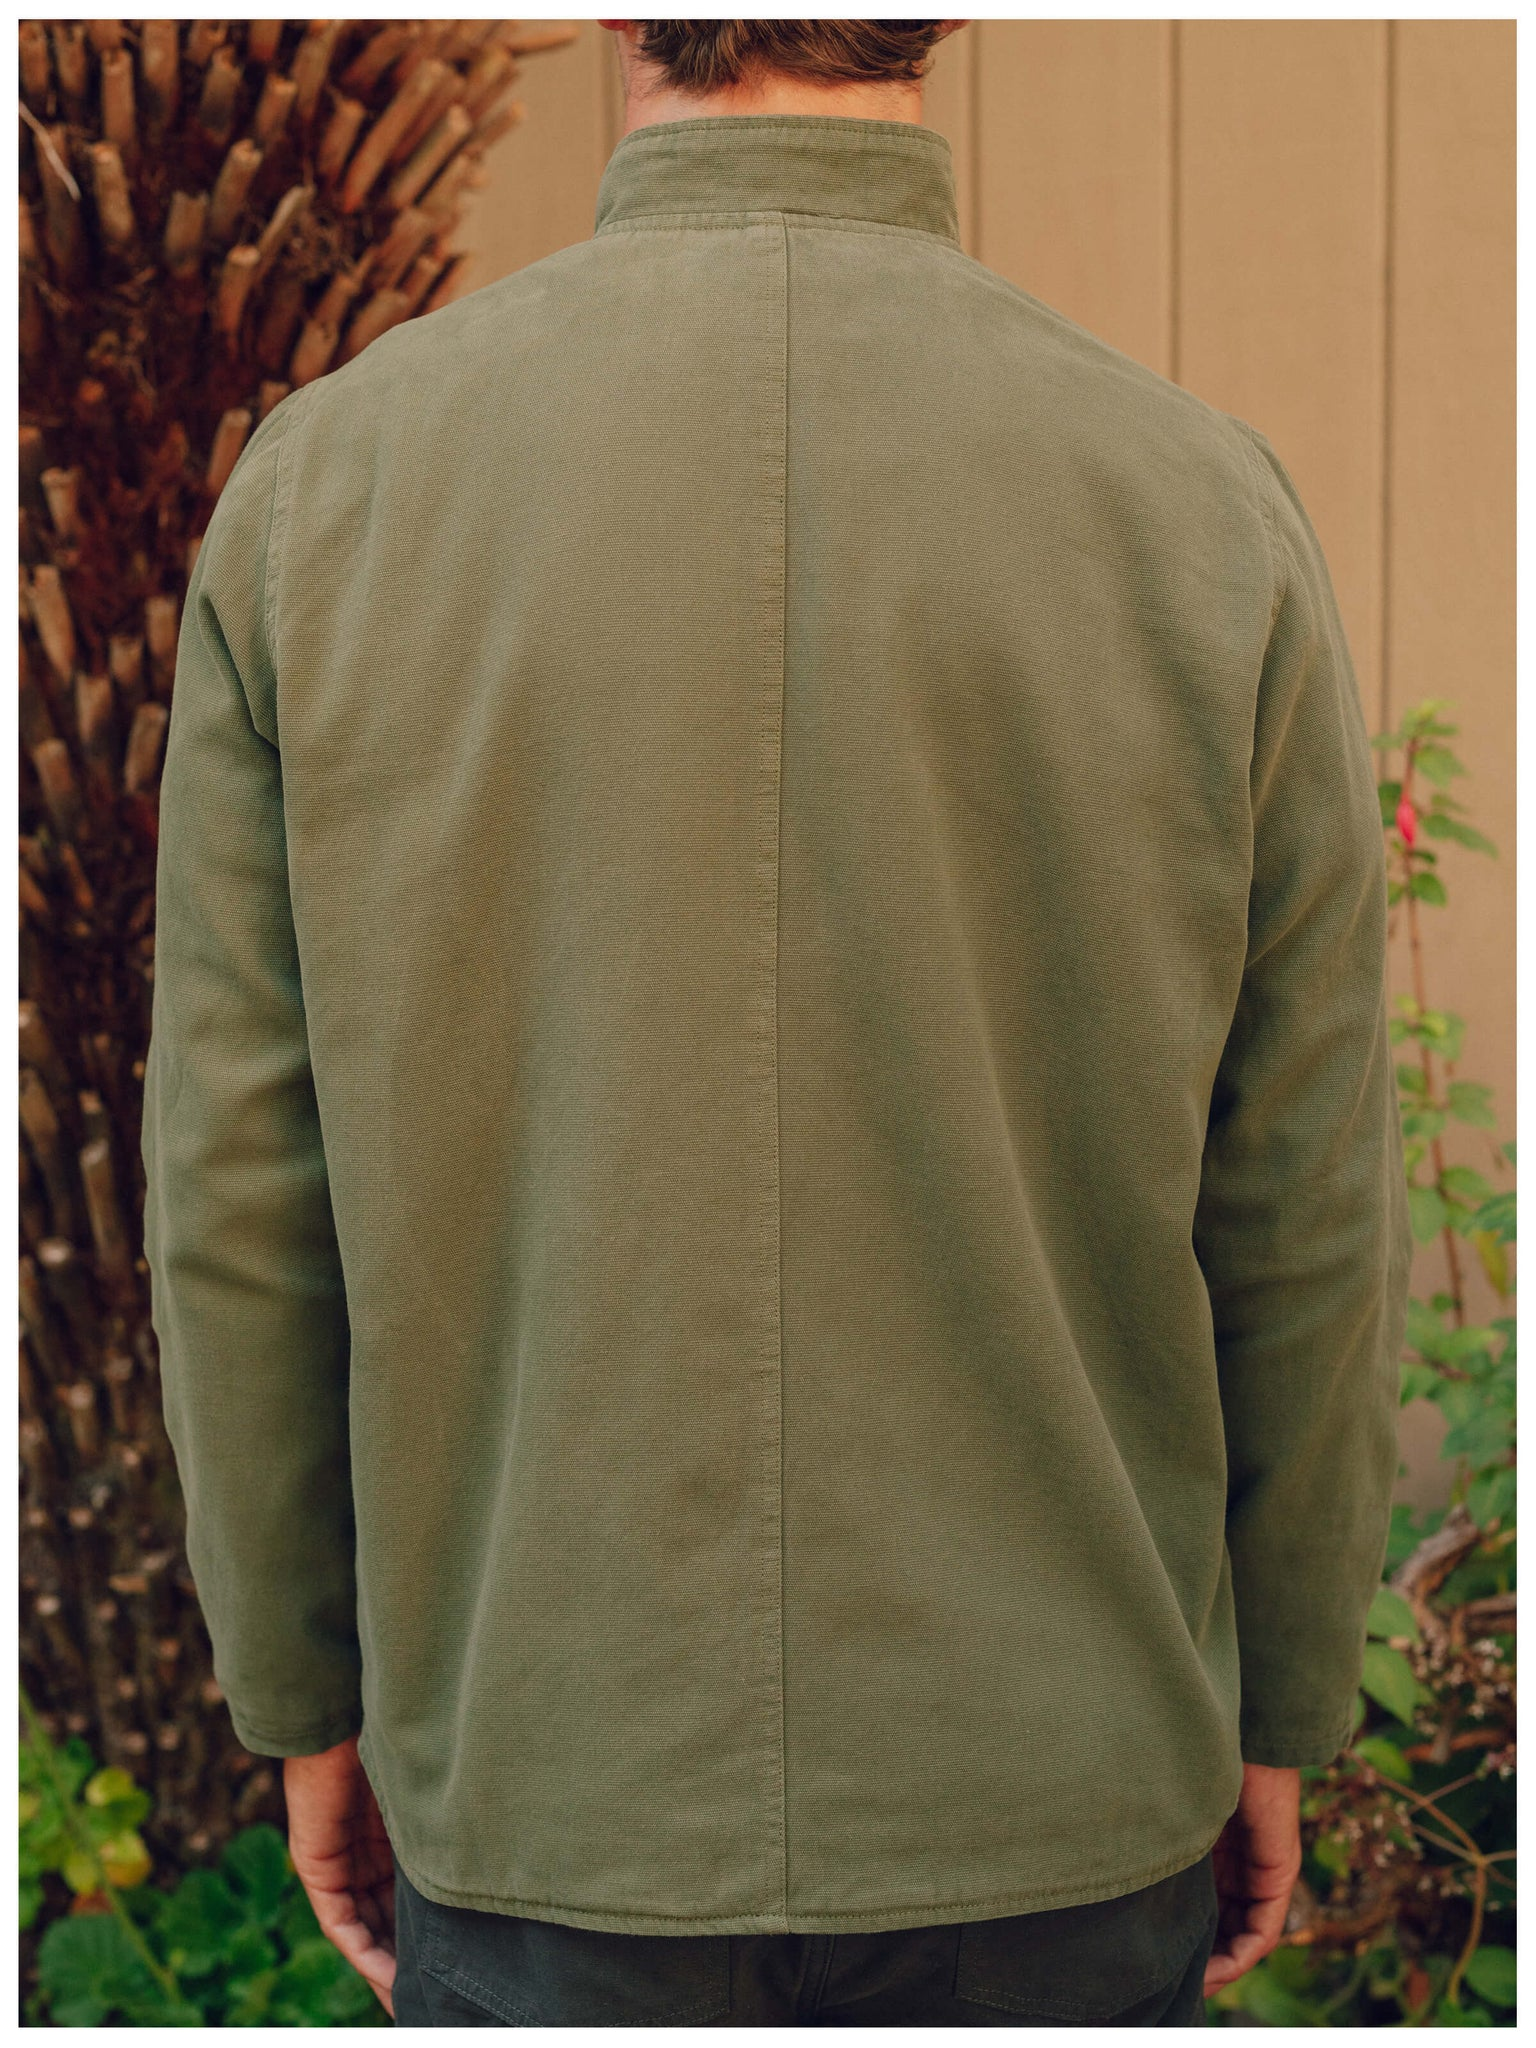 Fall Deck Jacket